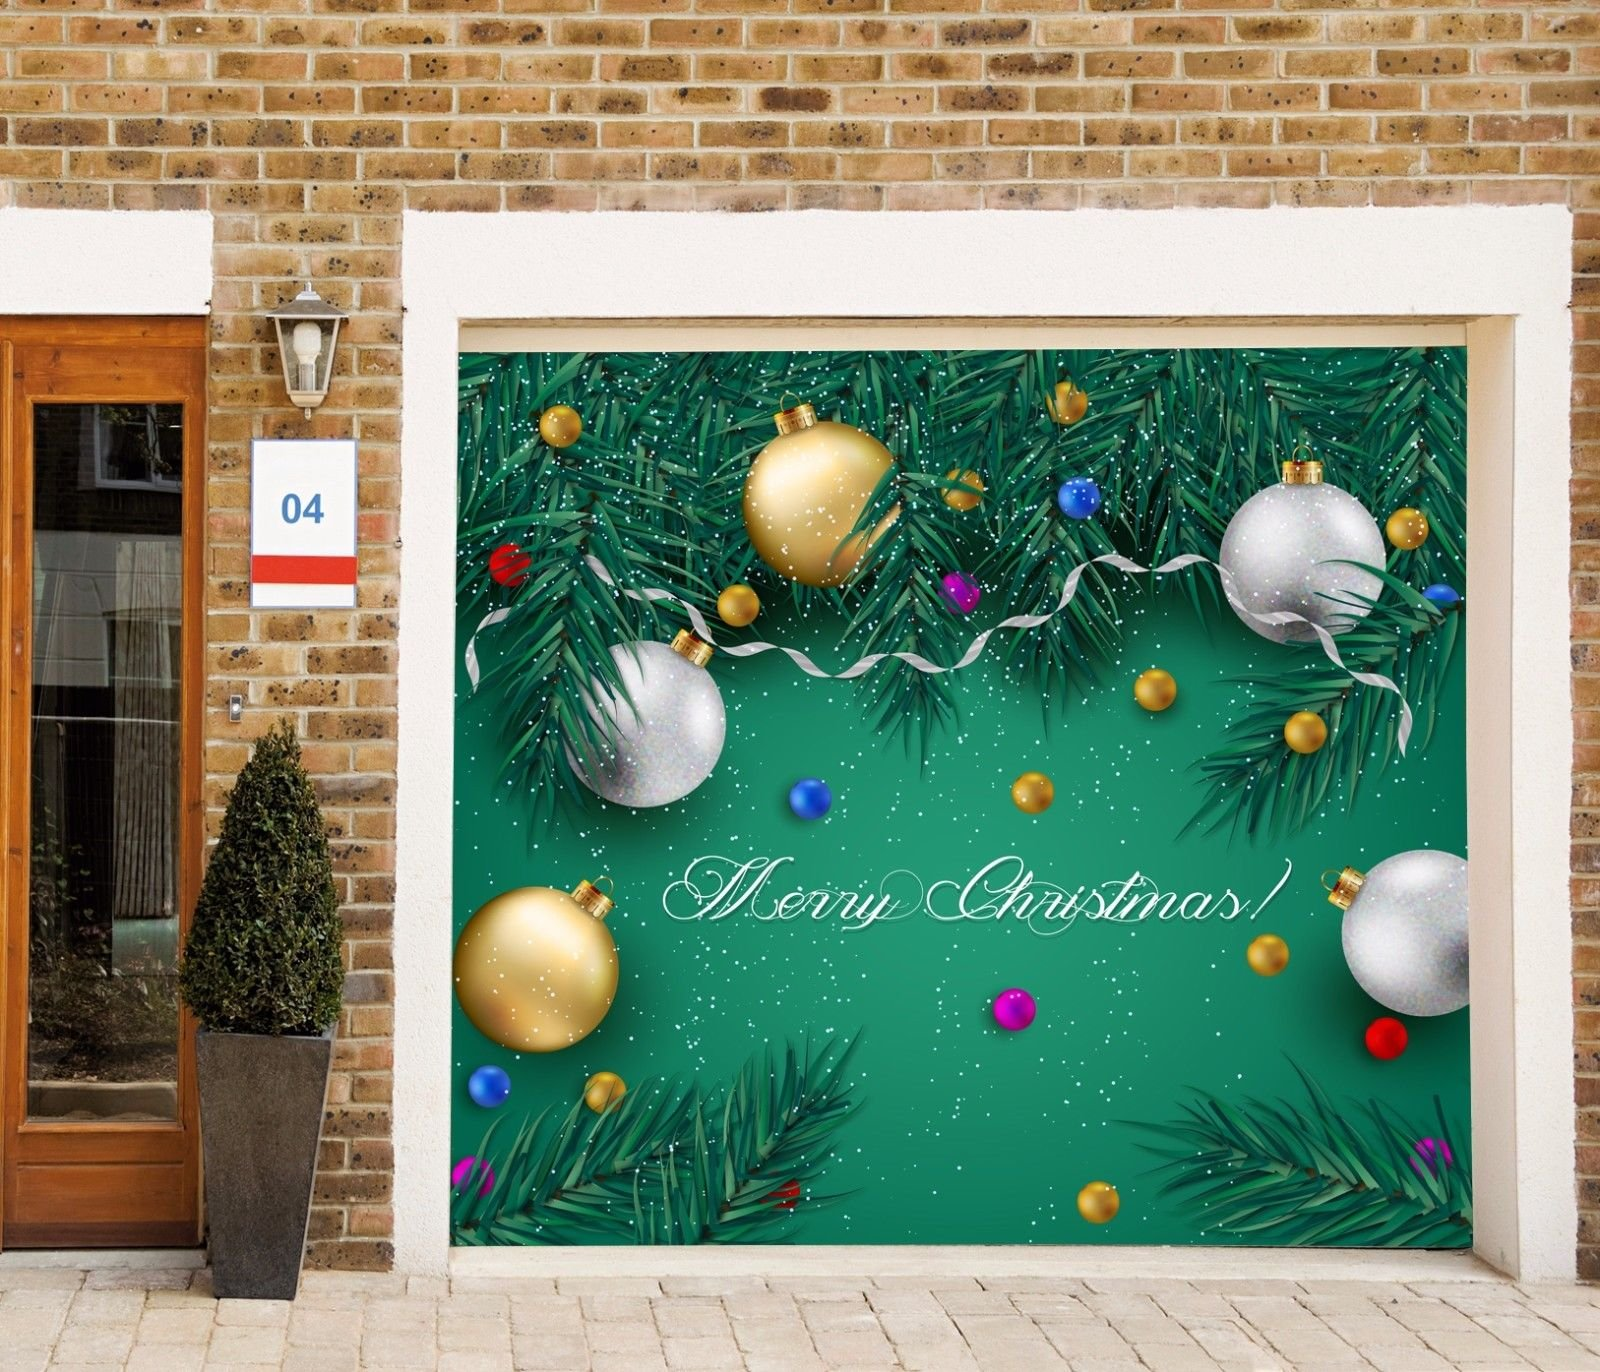 Holiday Decor Garage Door Banner Christmas Single Garage Door Covers Billboard Decorations of House Garage Merry Christmas Full Color Door Decor 3D Effect Print Mural Banner Size 83 x 89 inches DAV60